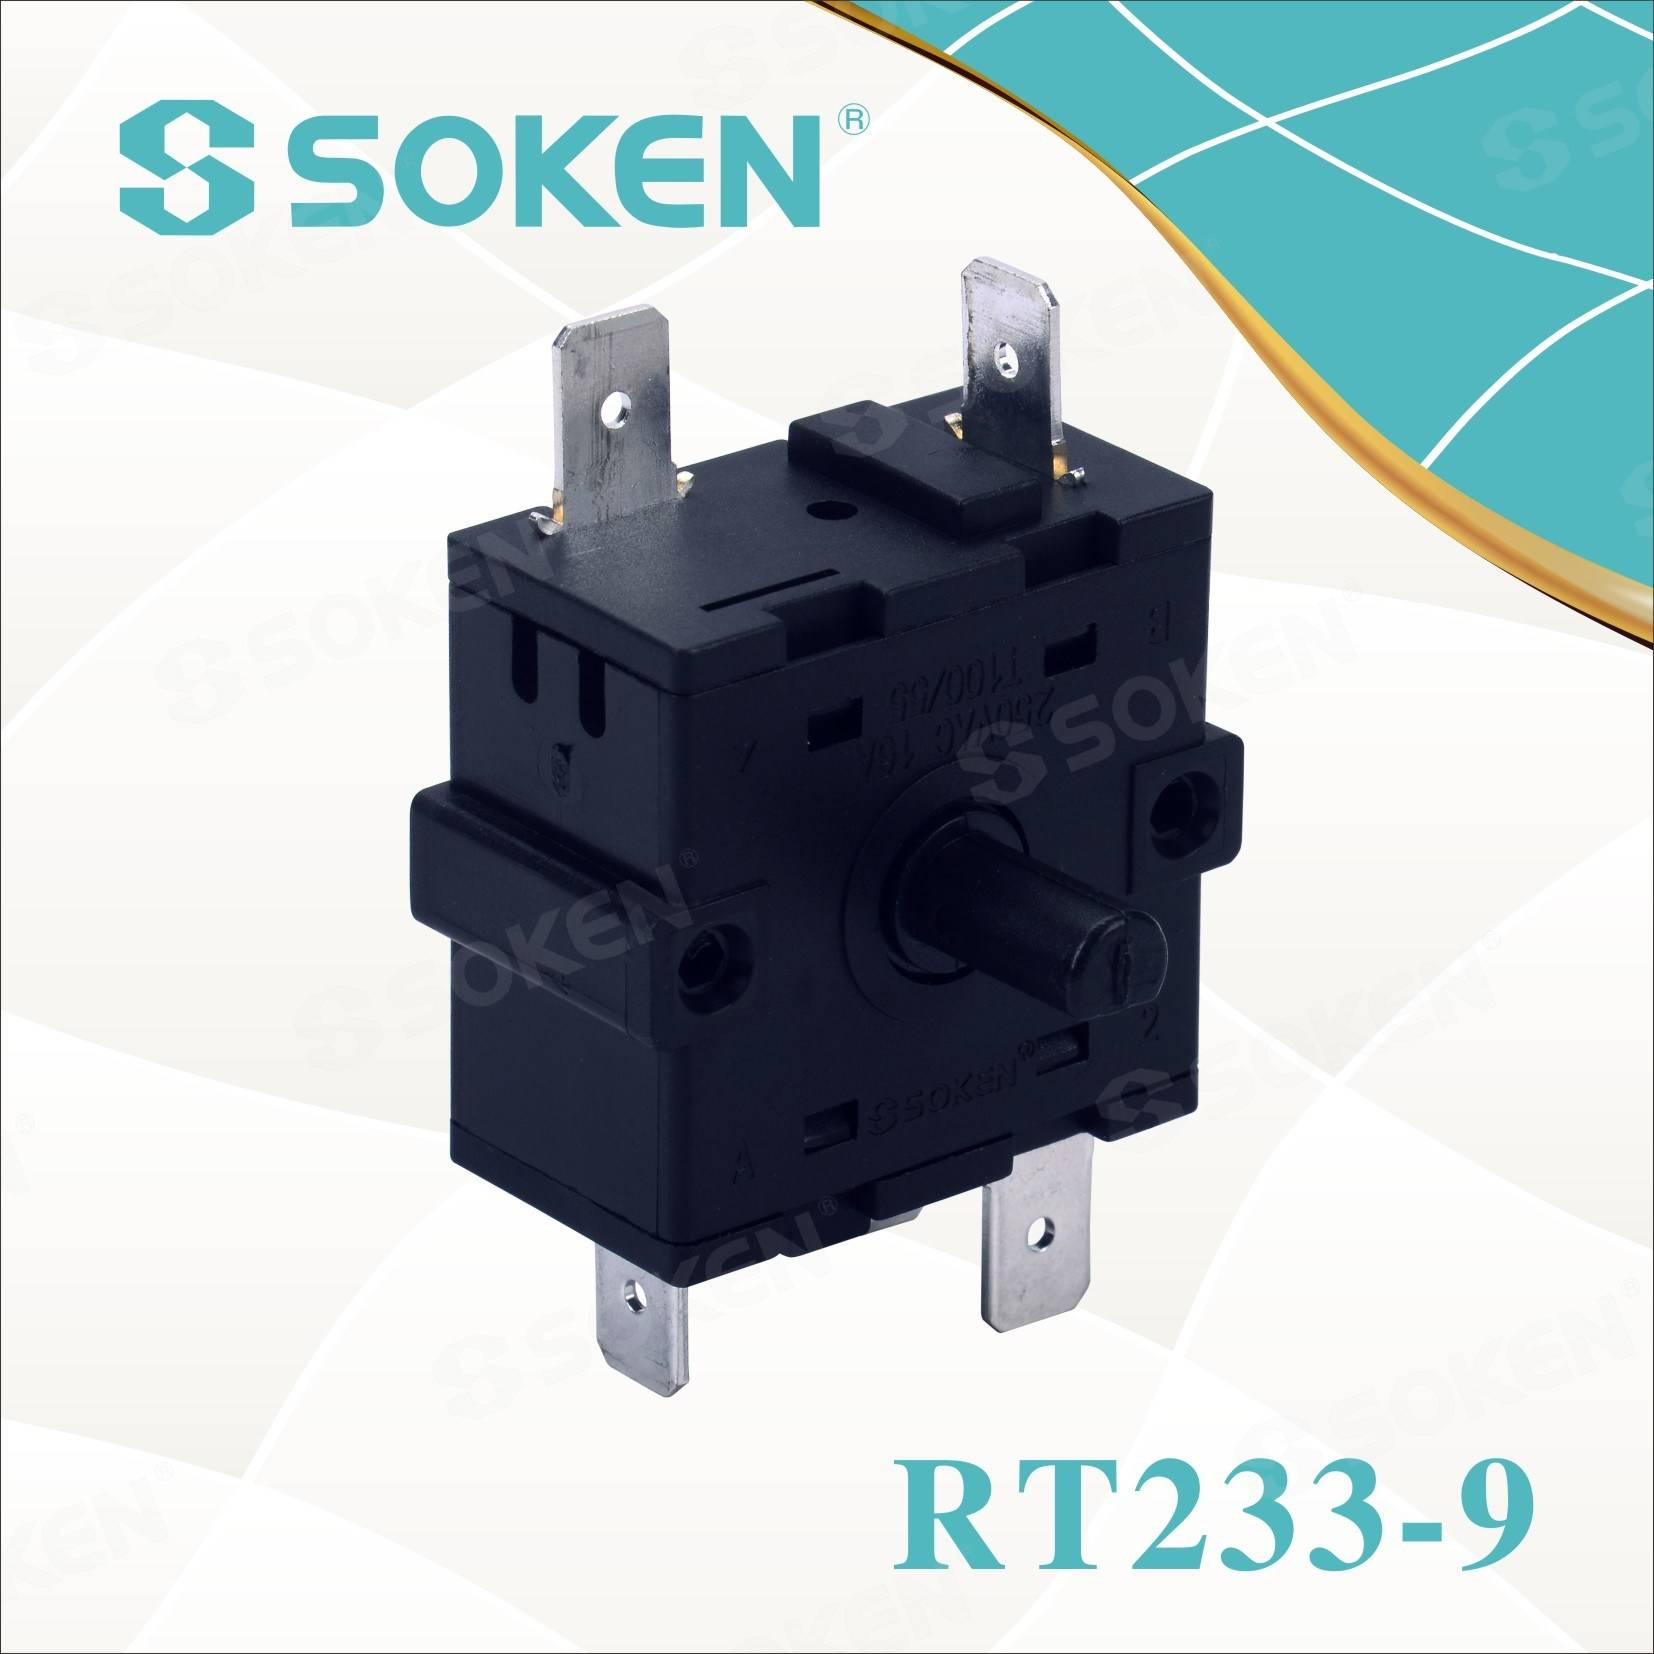 Quoted price for Rotary Cam Switch -